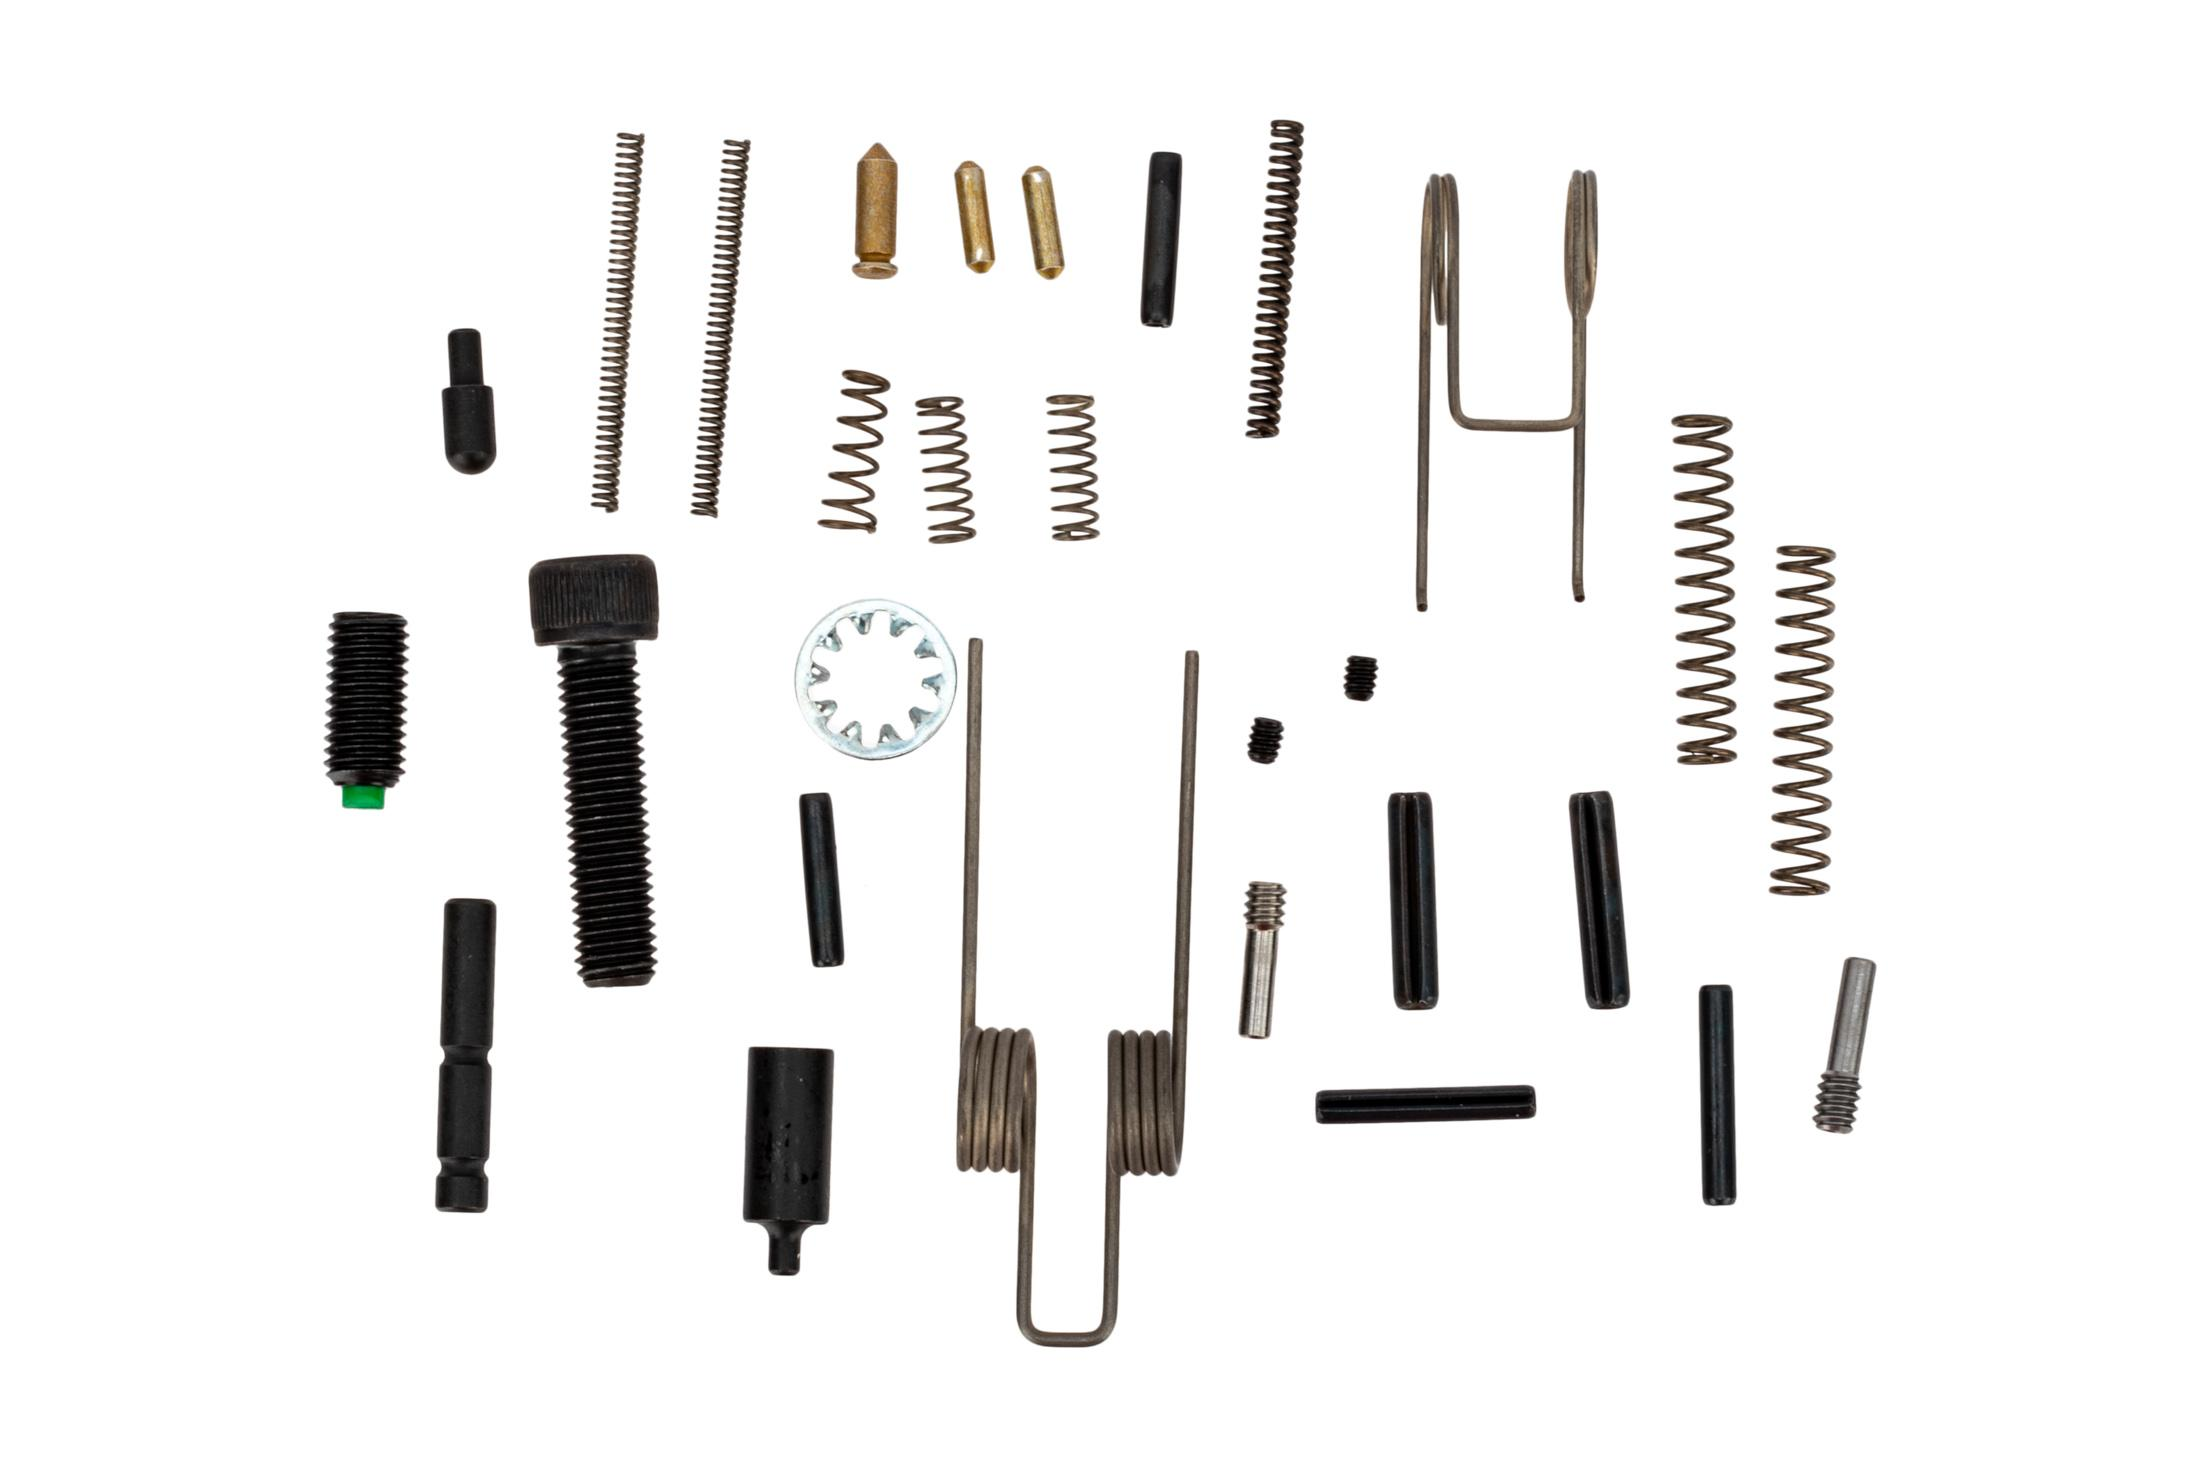 Aero Precision AR10 Field Repair Kit comes with everything to keep your rifle running at the range